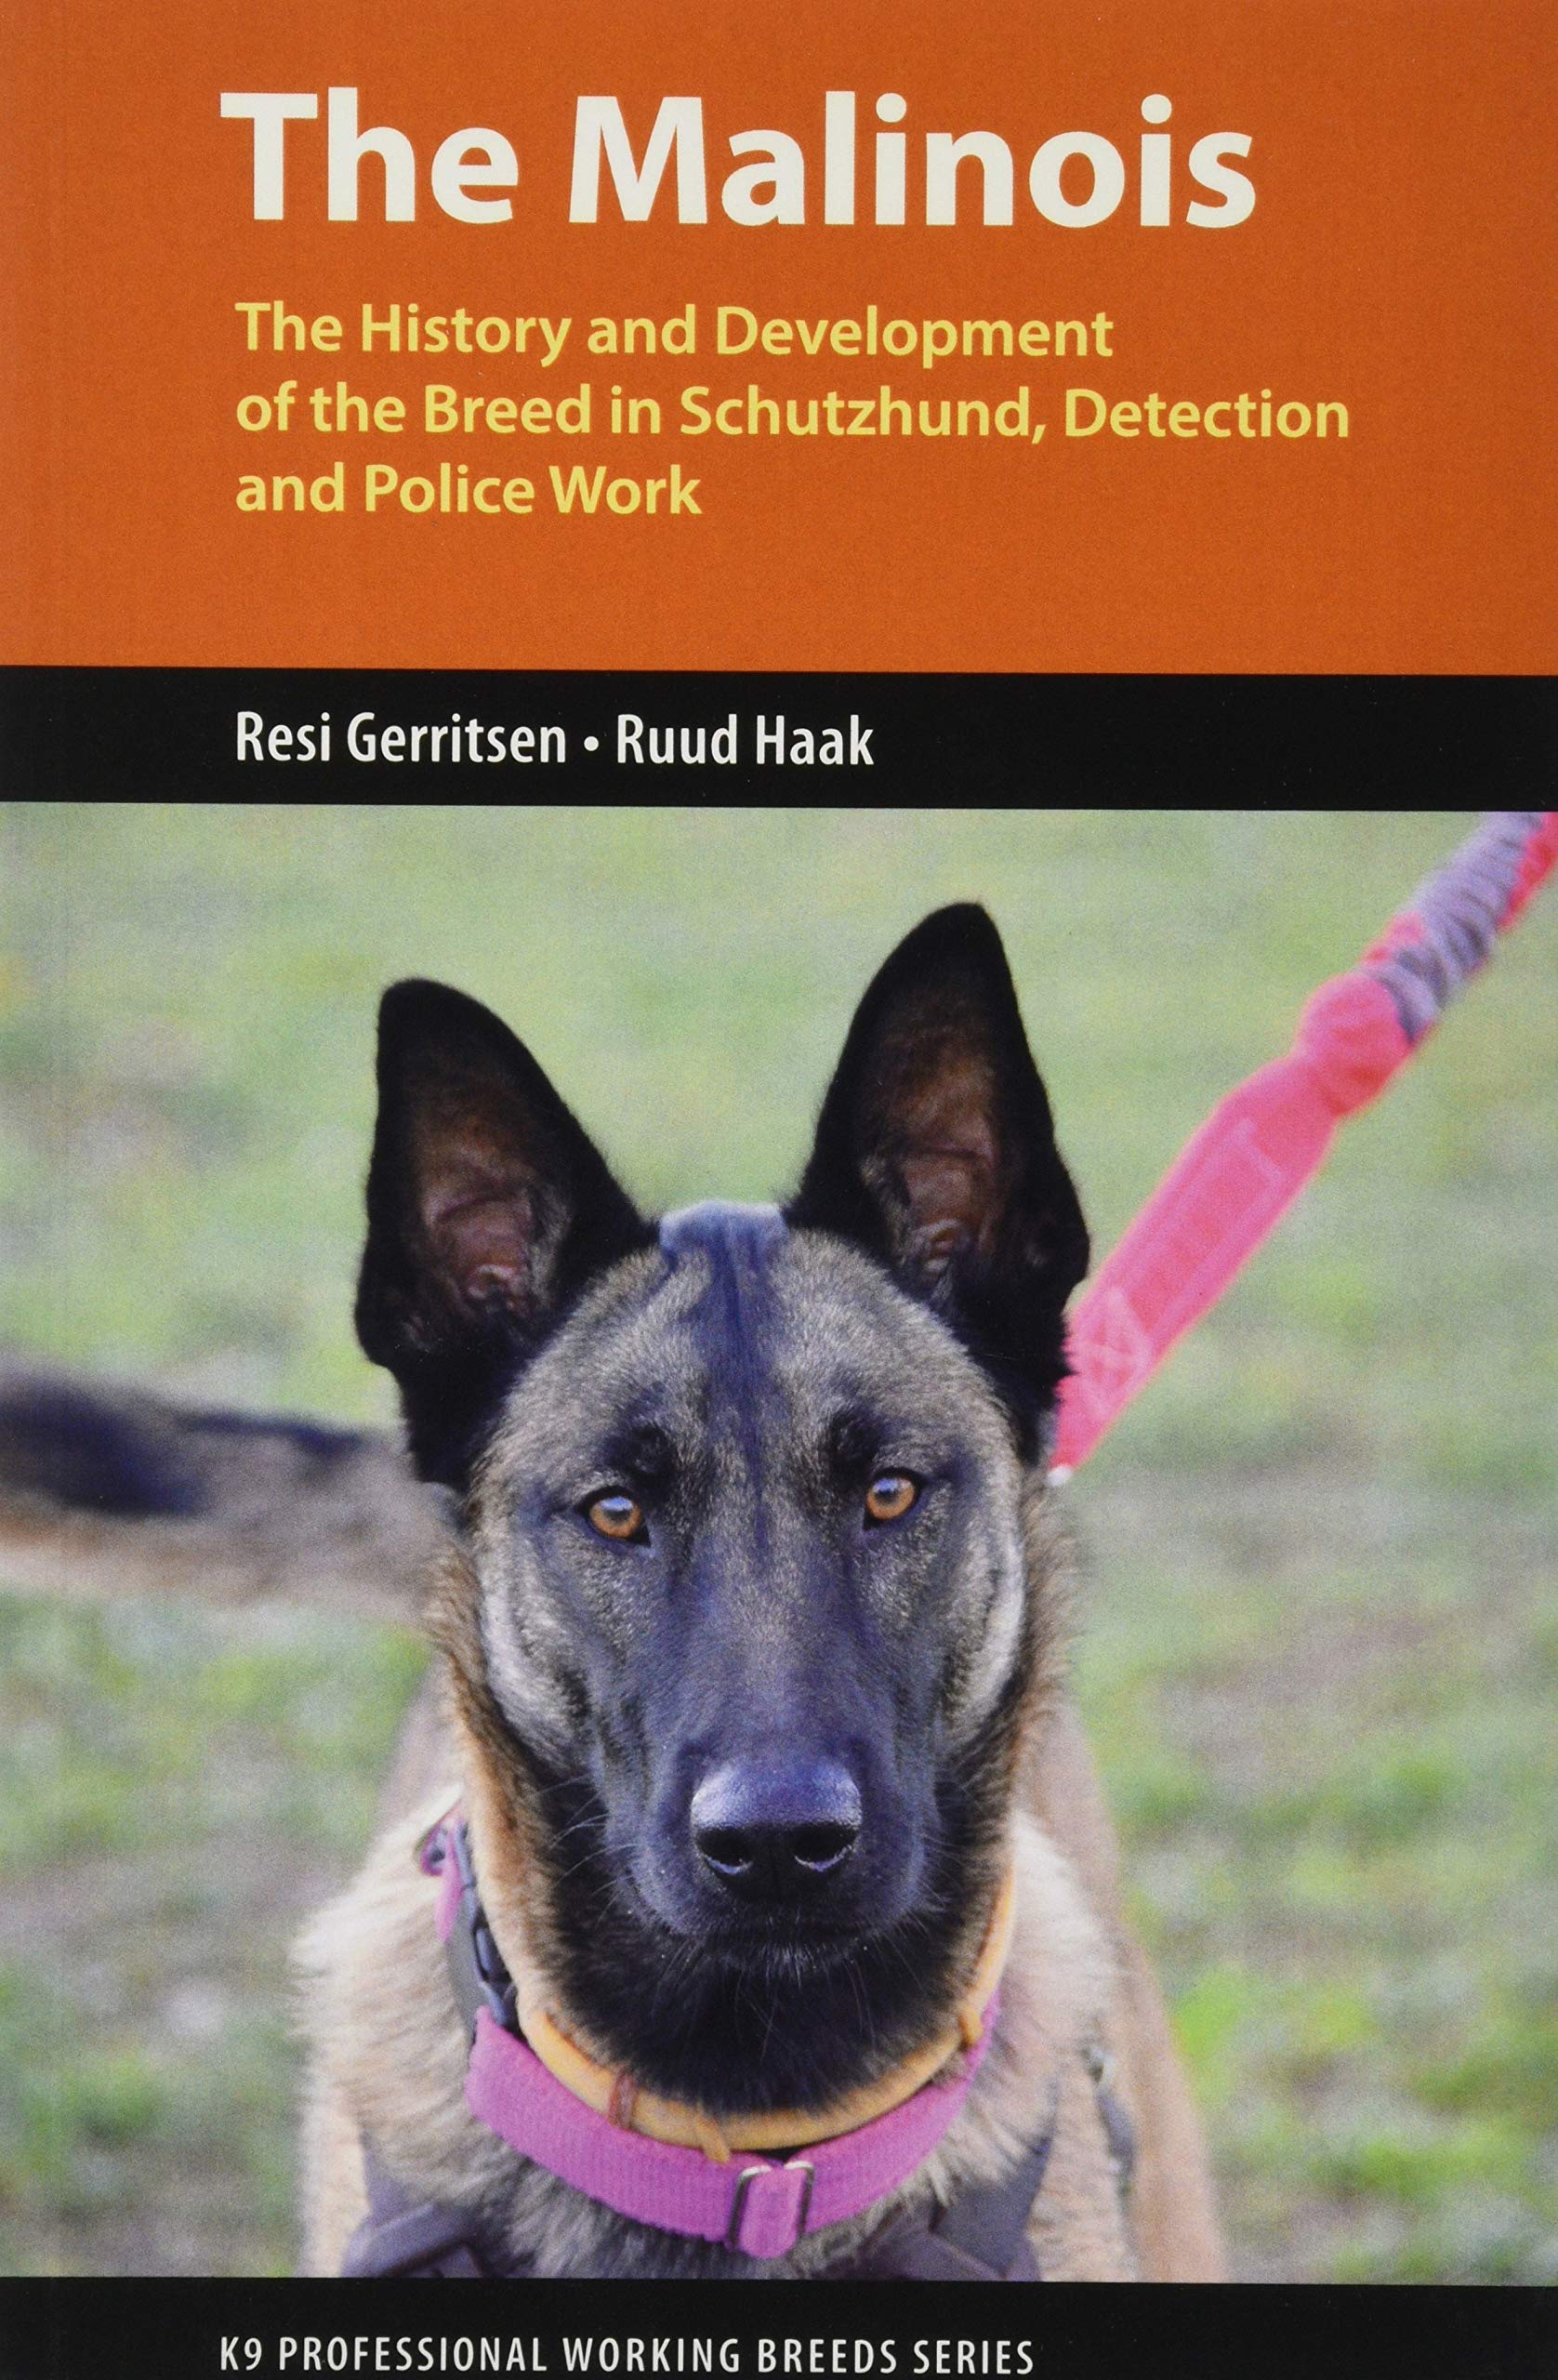 The Malinois: The History and Development of the Breed In Tracking, Detection and Police Work (K9 Professional Working Breeds)